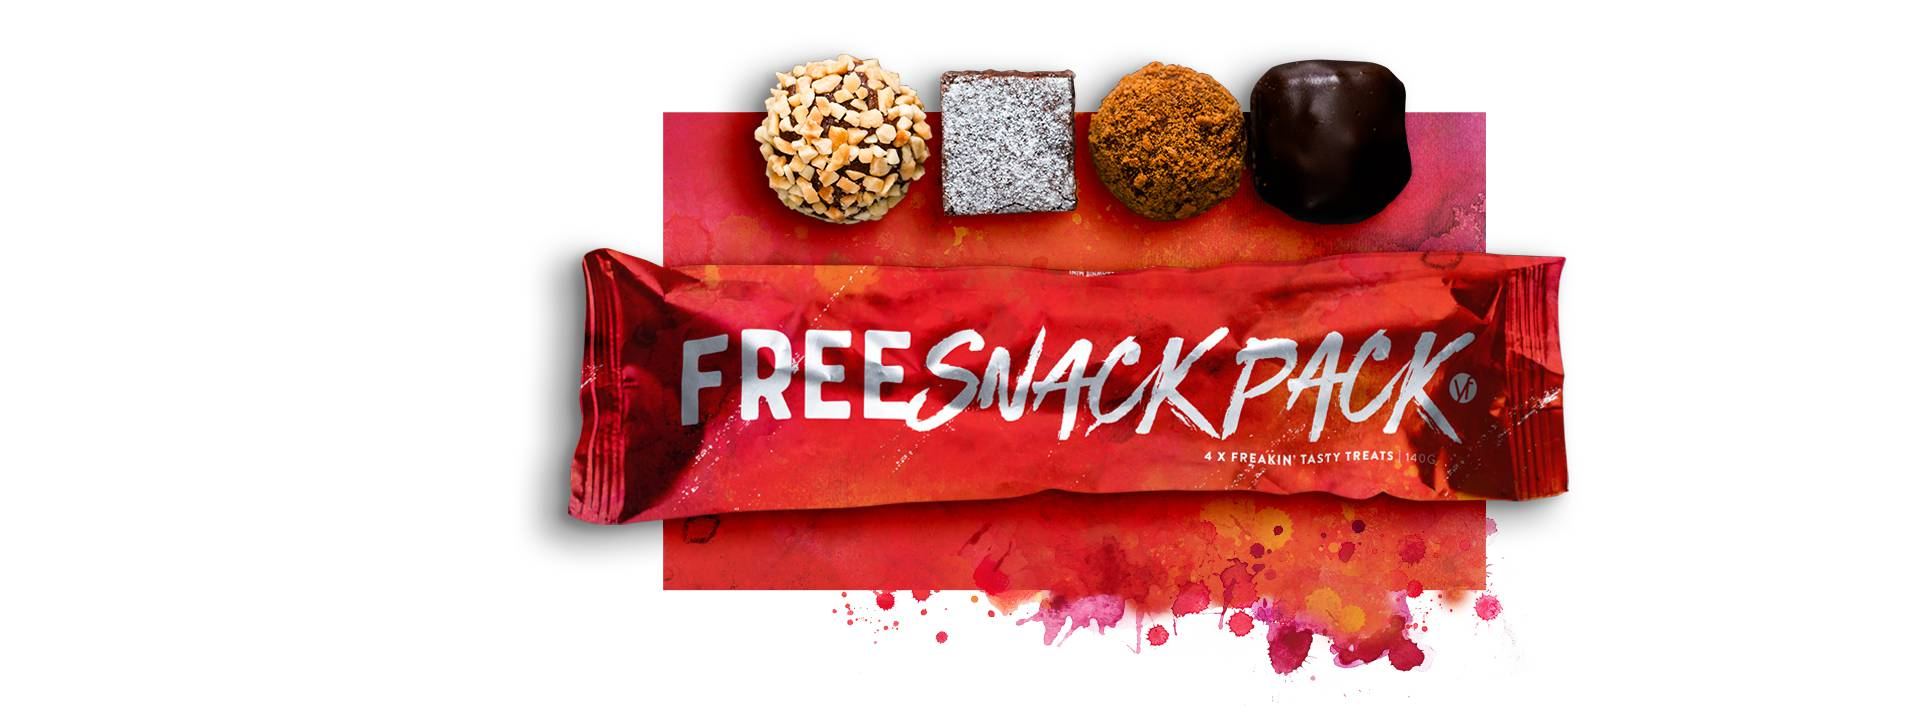 Snack-Pack-Header